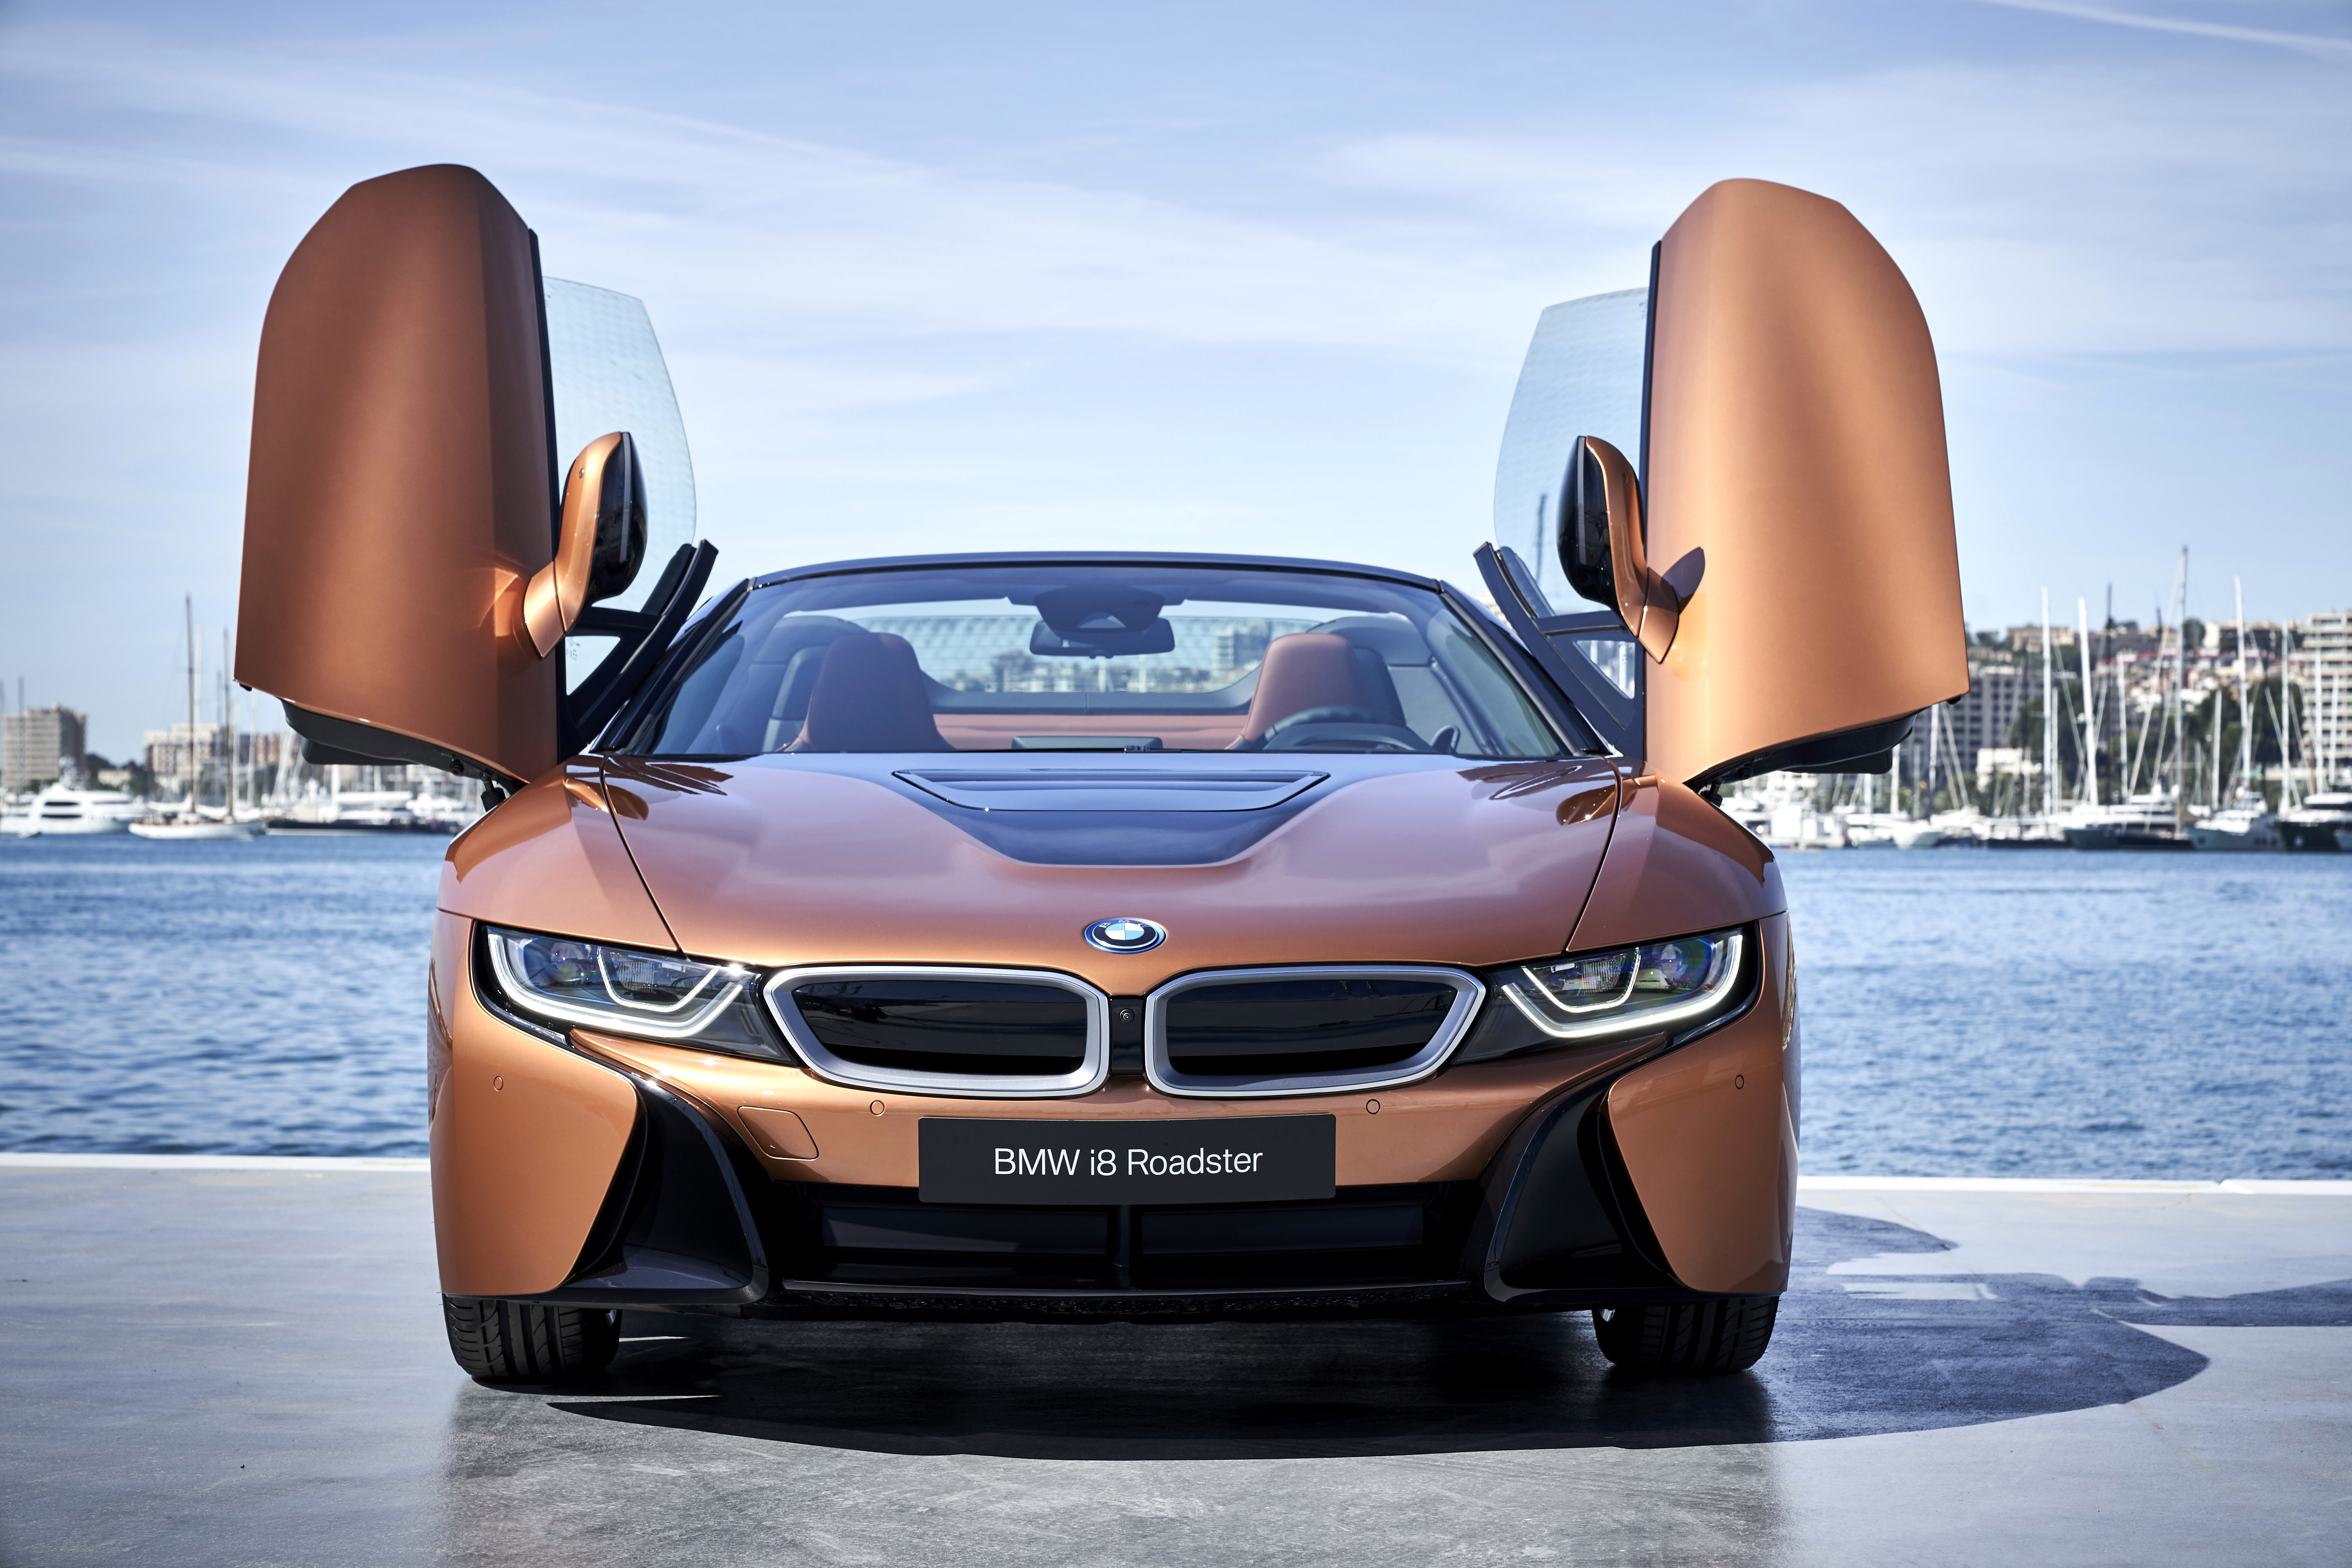 BMW Malaysia Introduces The First-Ever BMW i8 Roadster @ CEPSI 2018